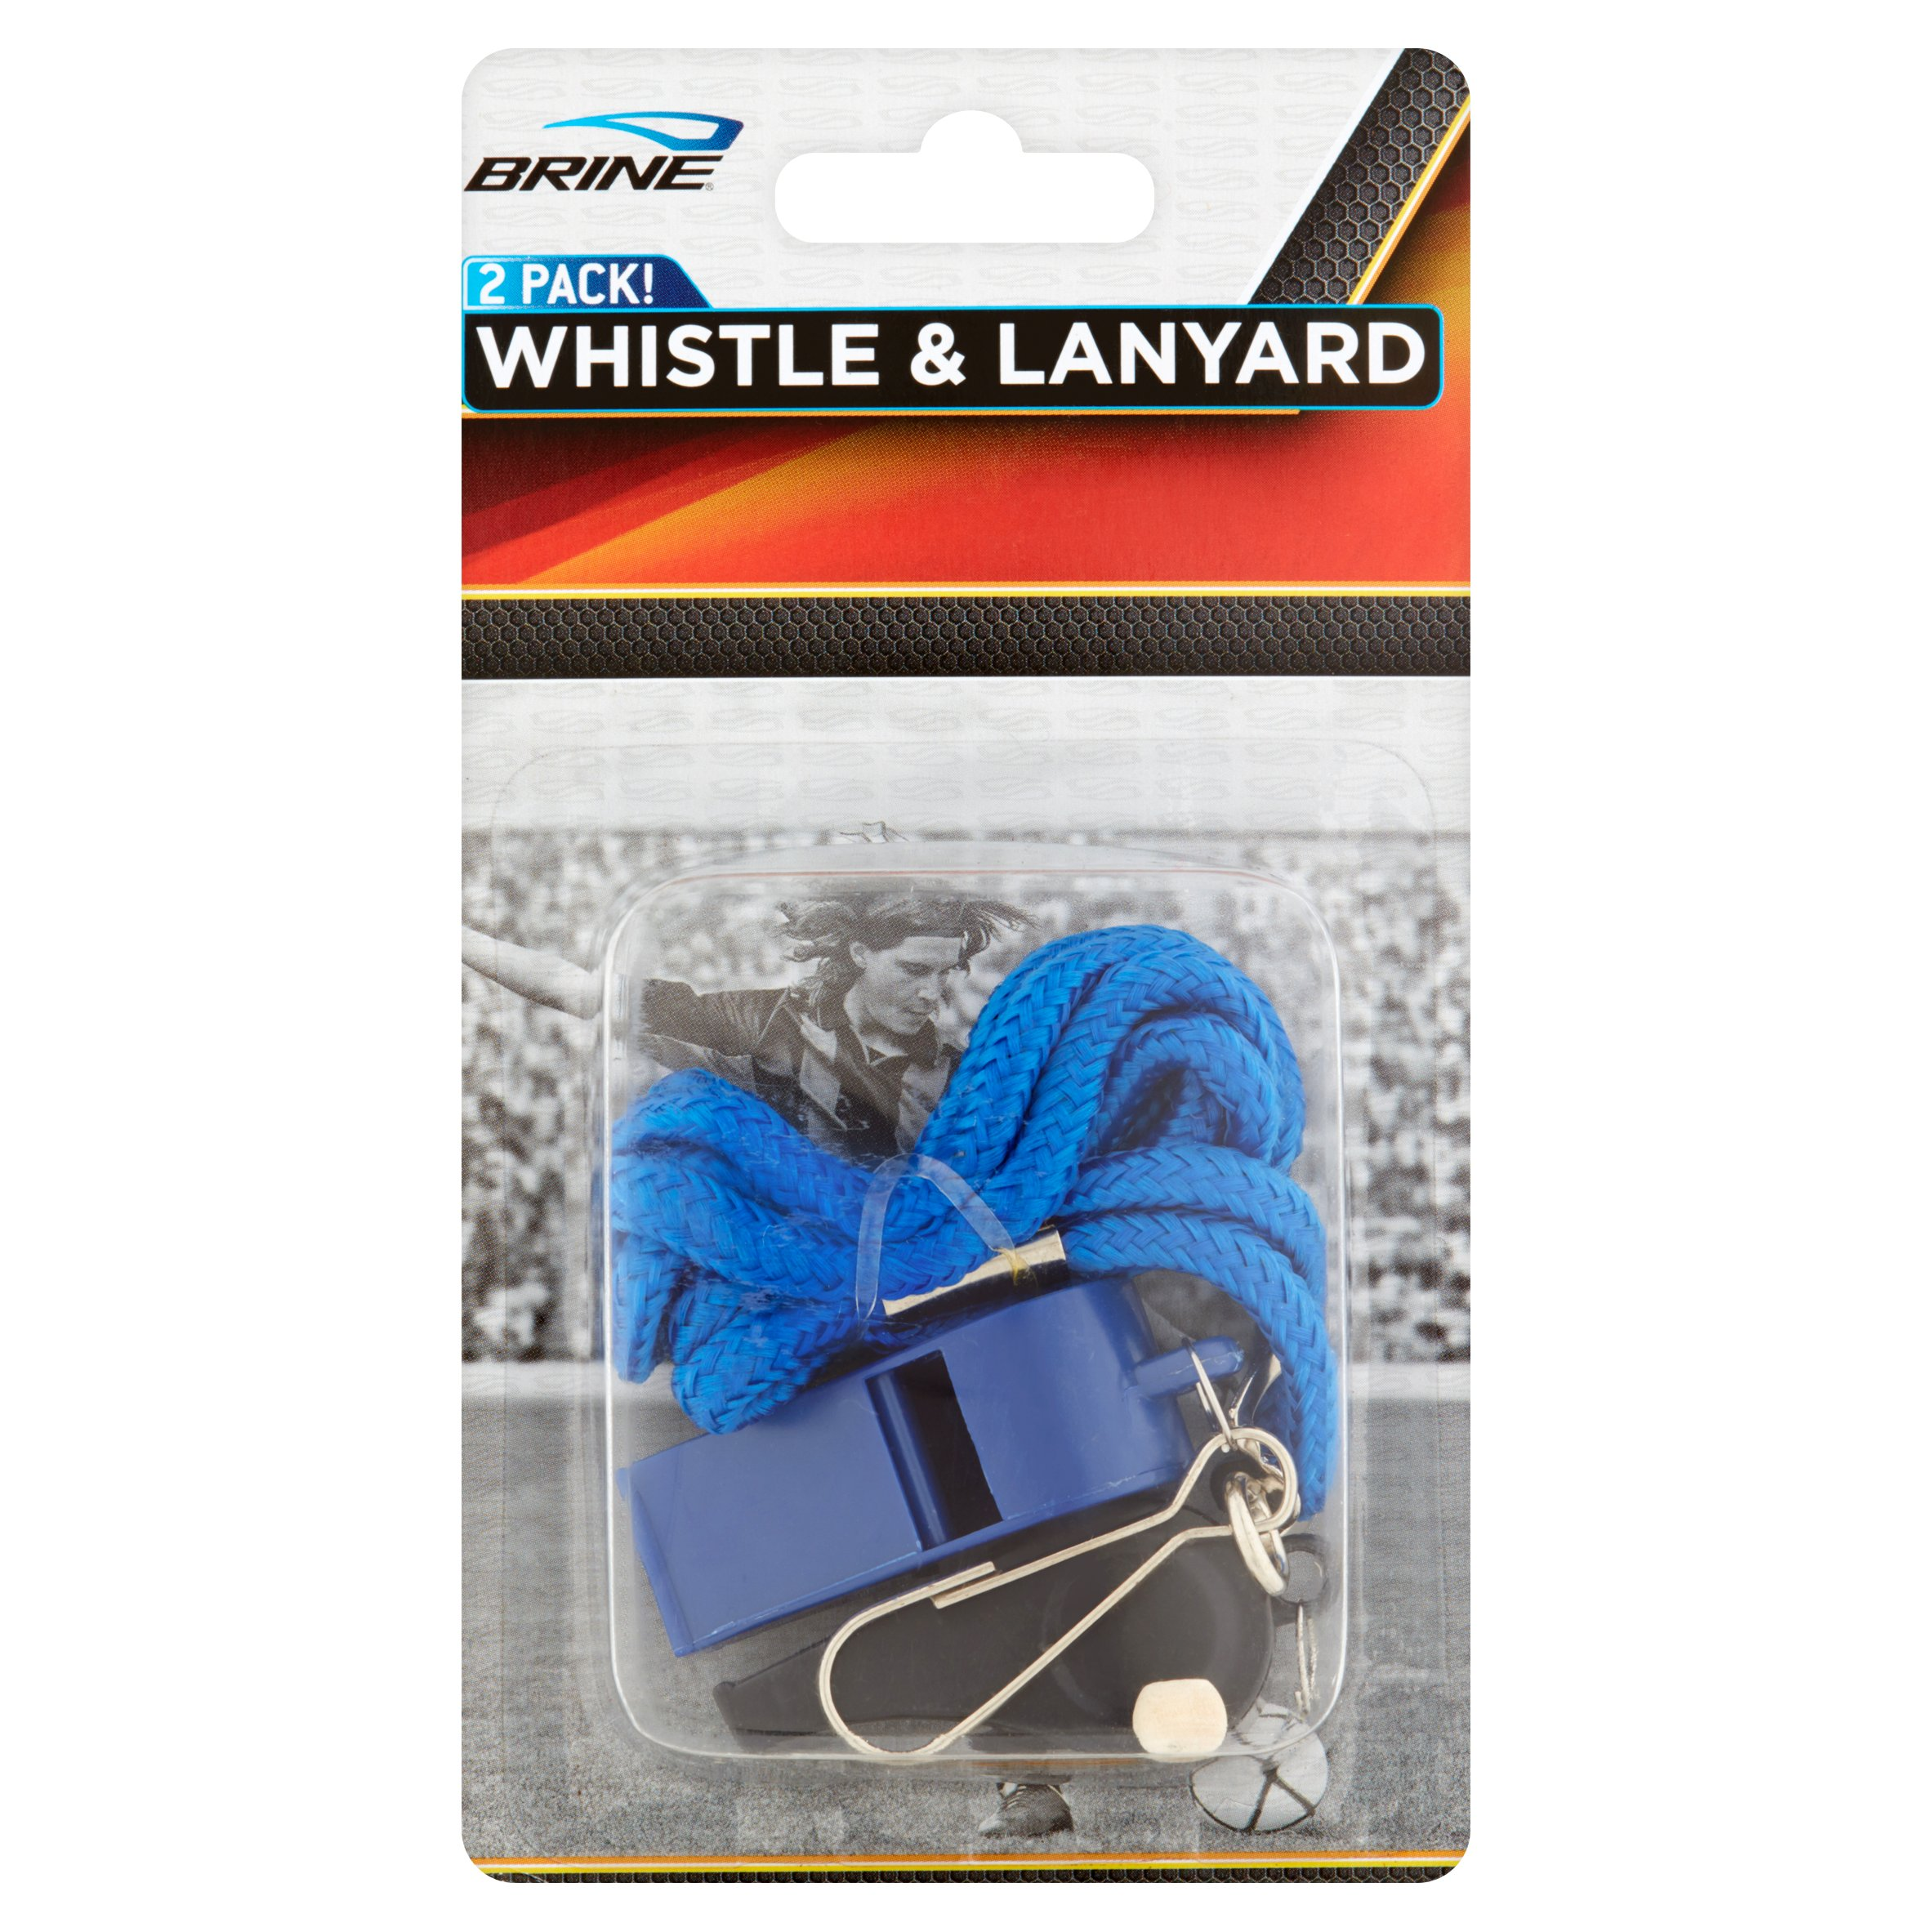 Brine Whistle & Lanyard, 2 Pack